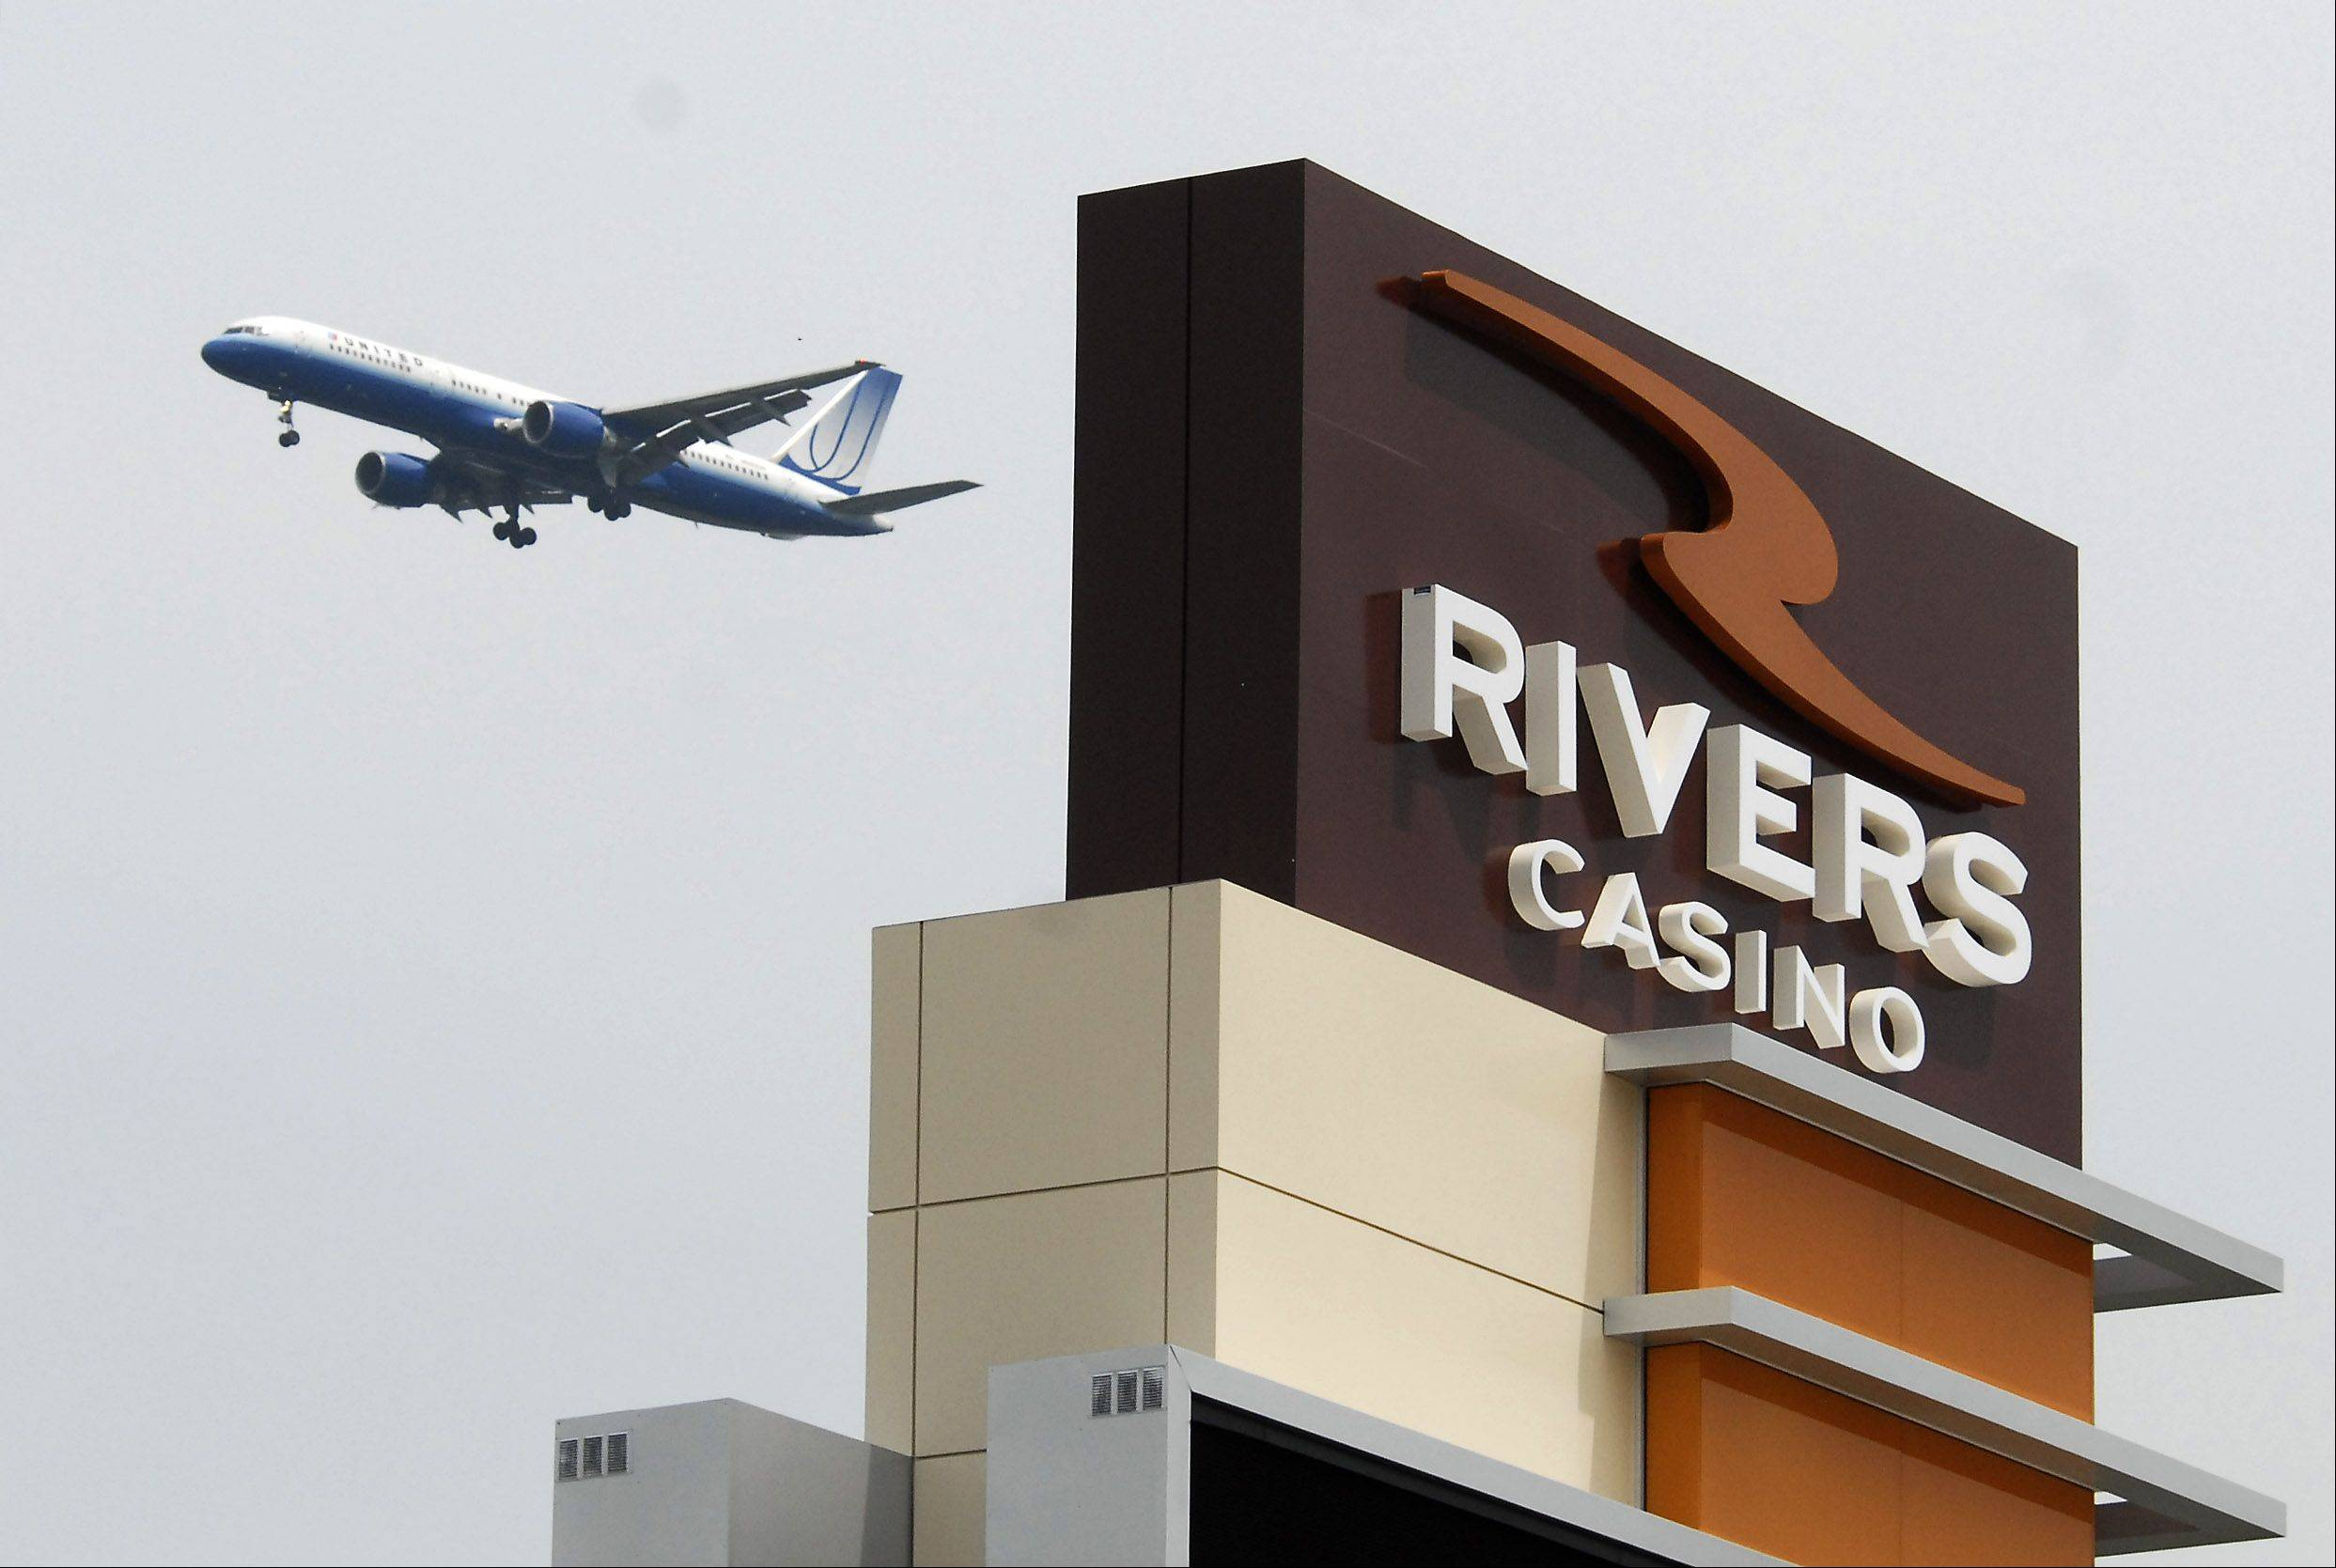 Des Plaines casino takes in $17 million in first two weeks